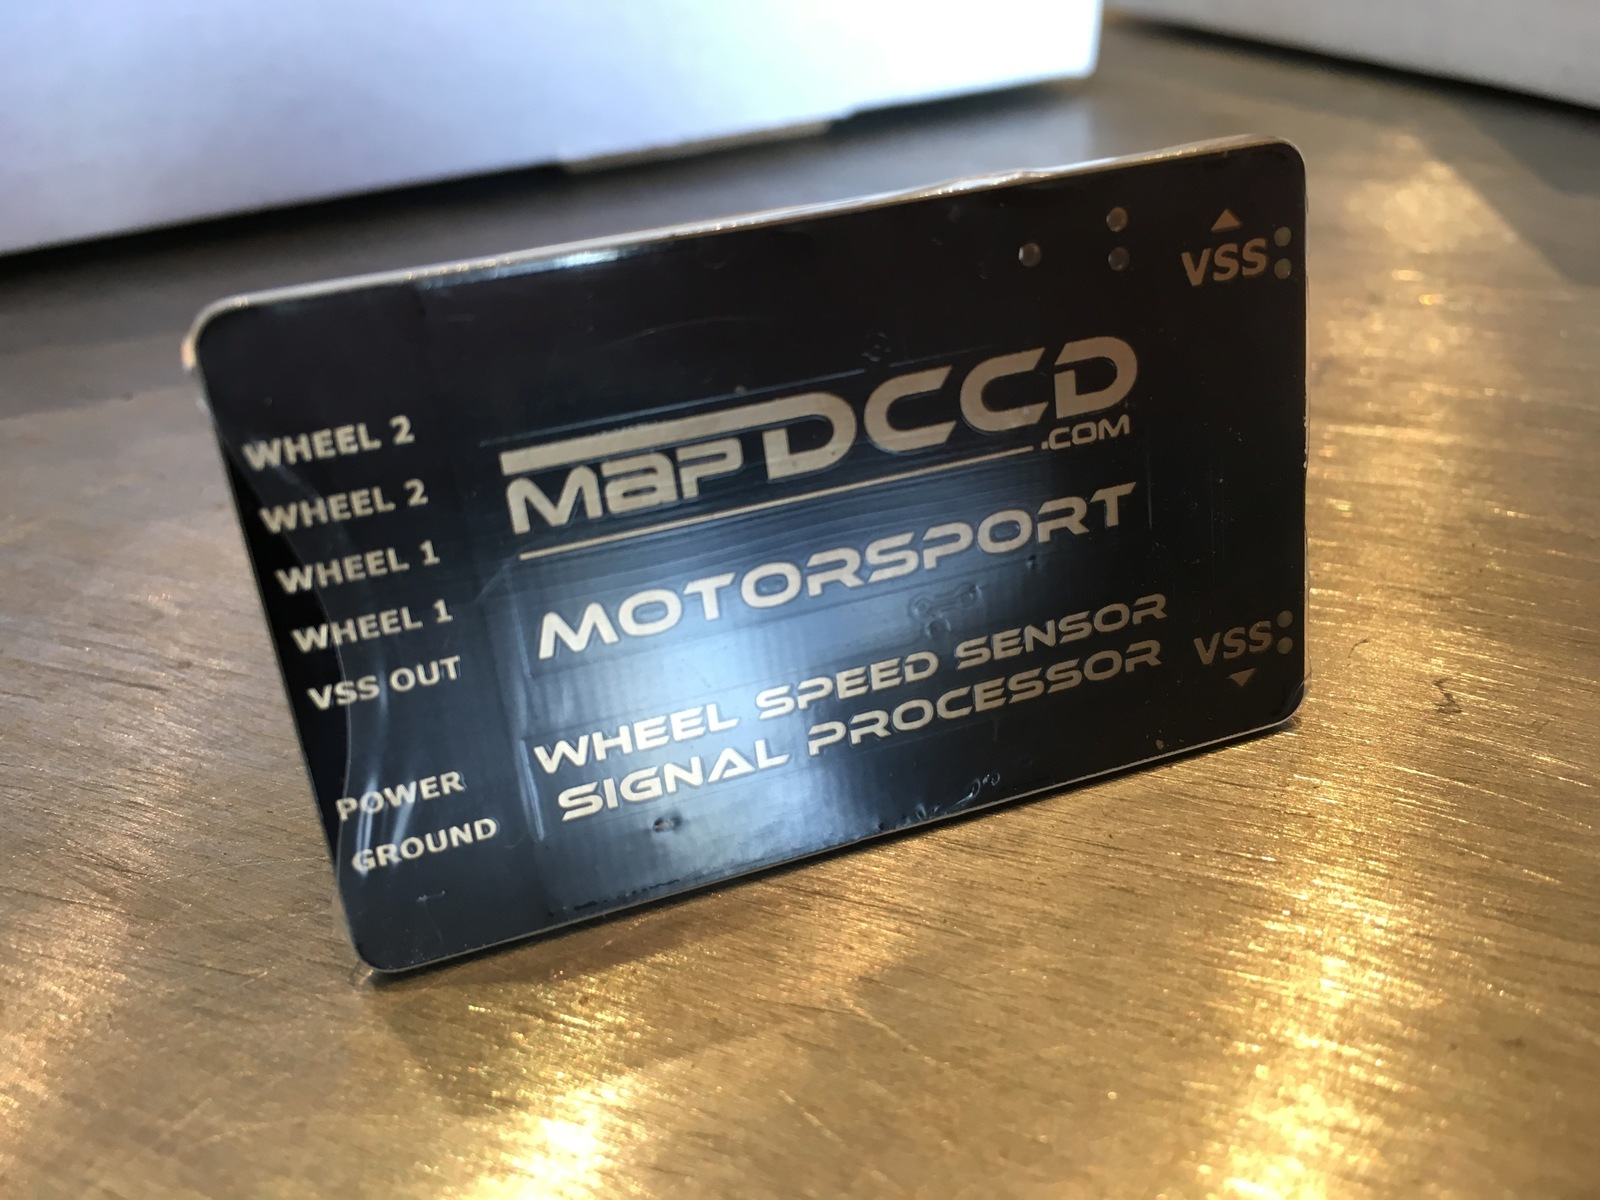 MAPDCCD Motorsport Wheel Speed Sensor Signal Processor